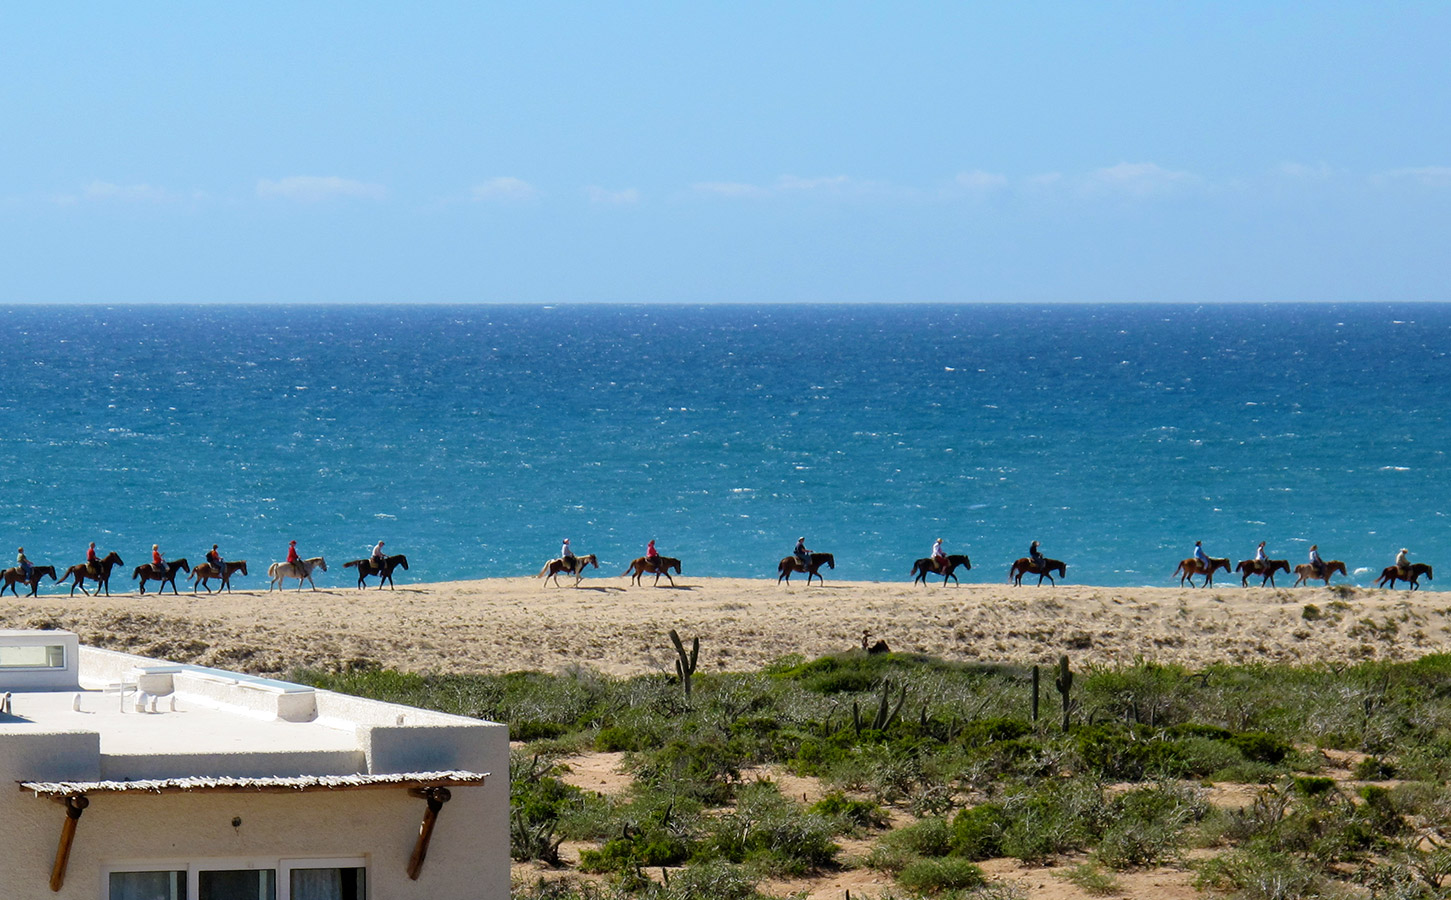 Horseback Riding on the Dune - Yoga Retreat - Mexico